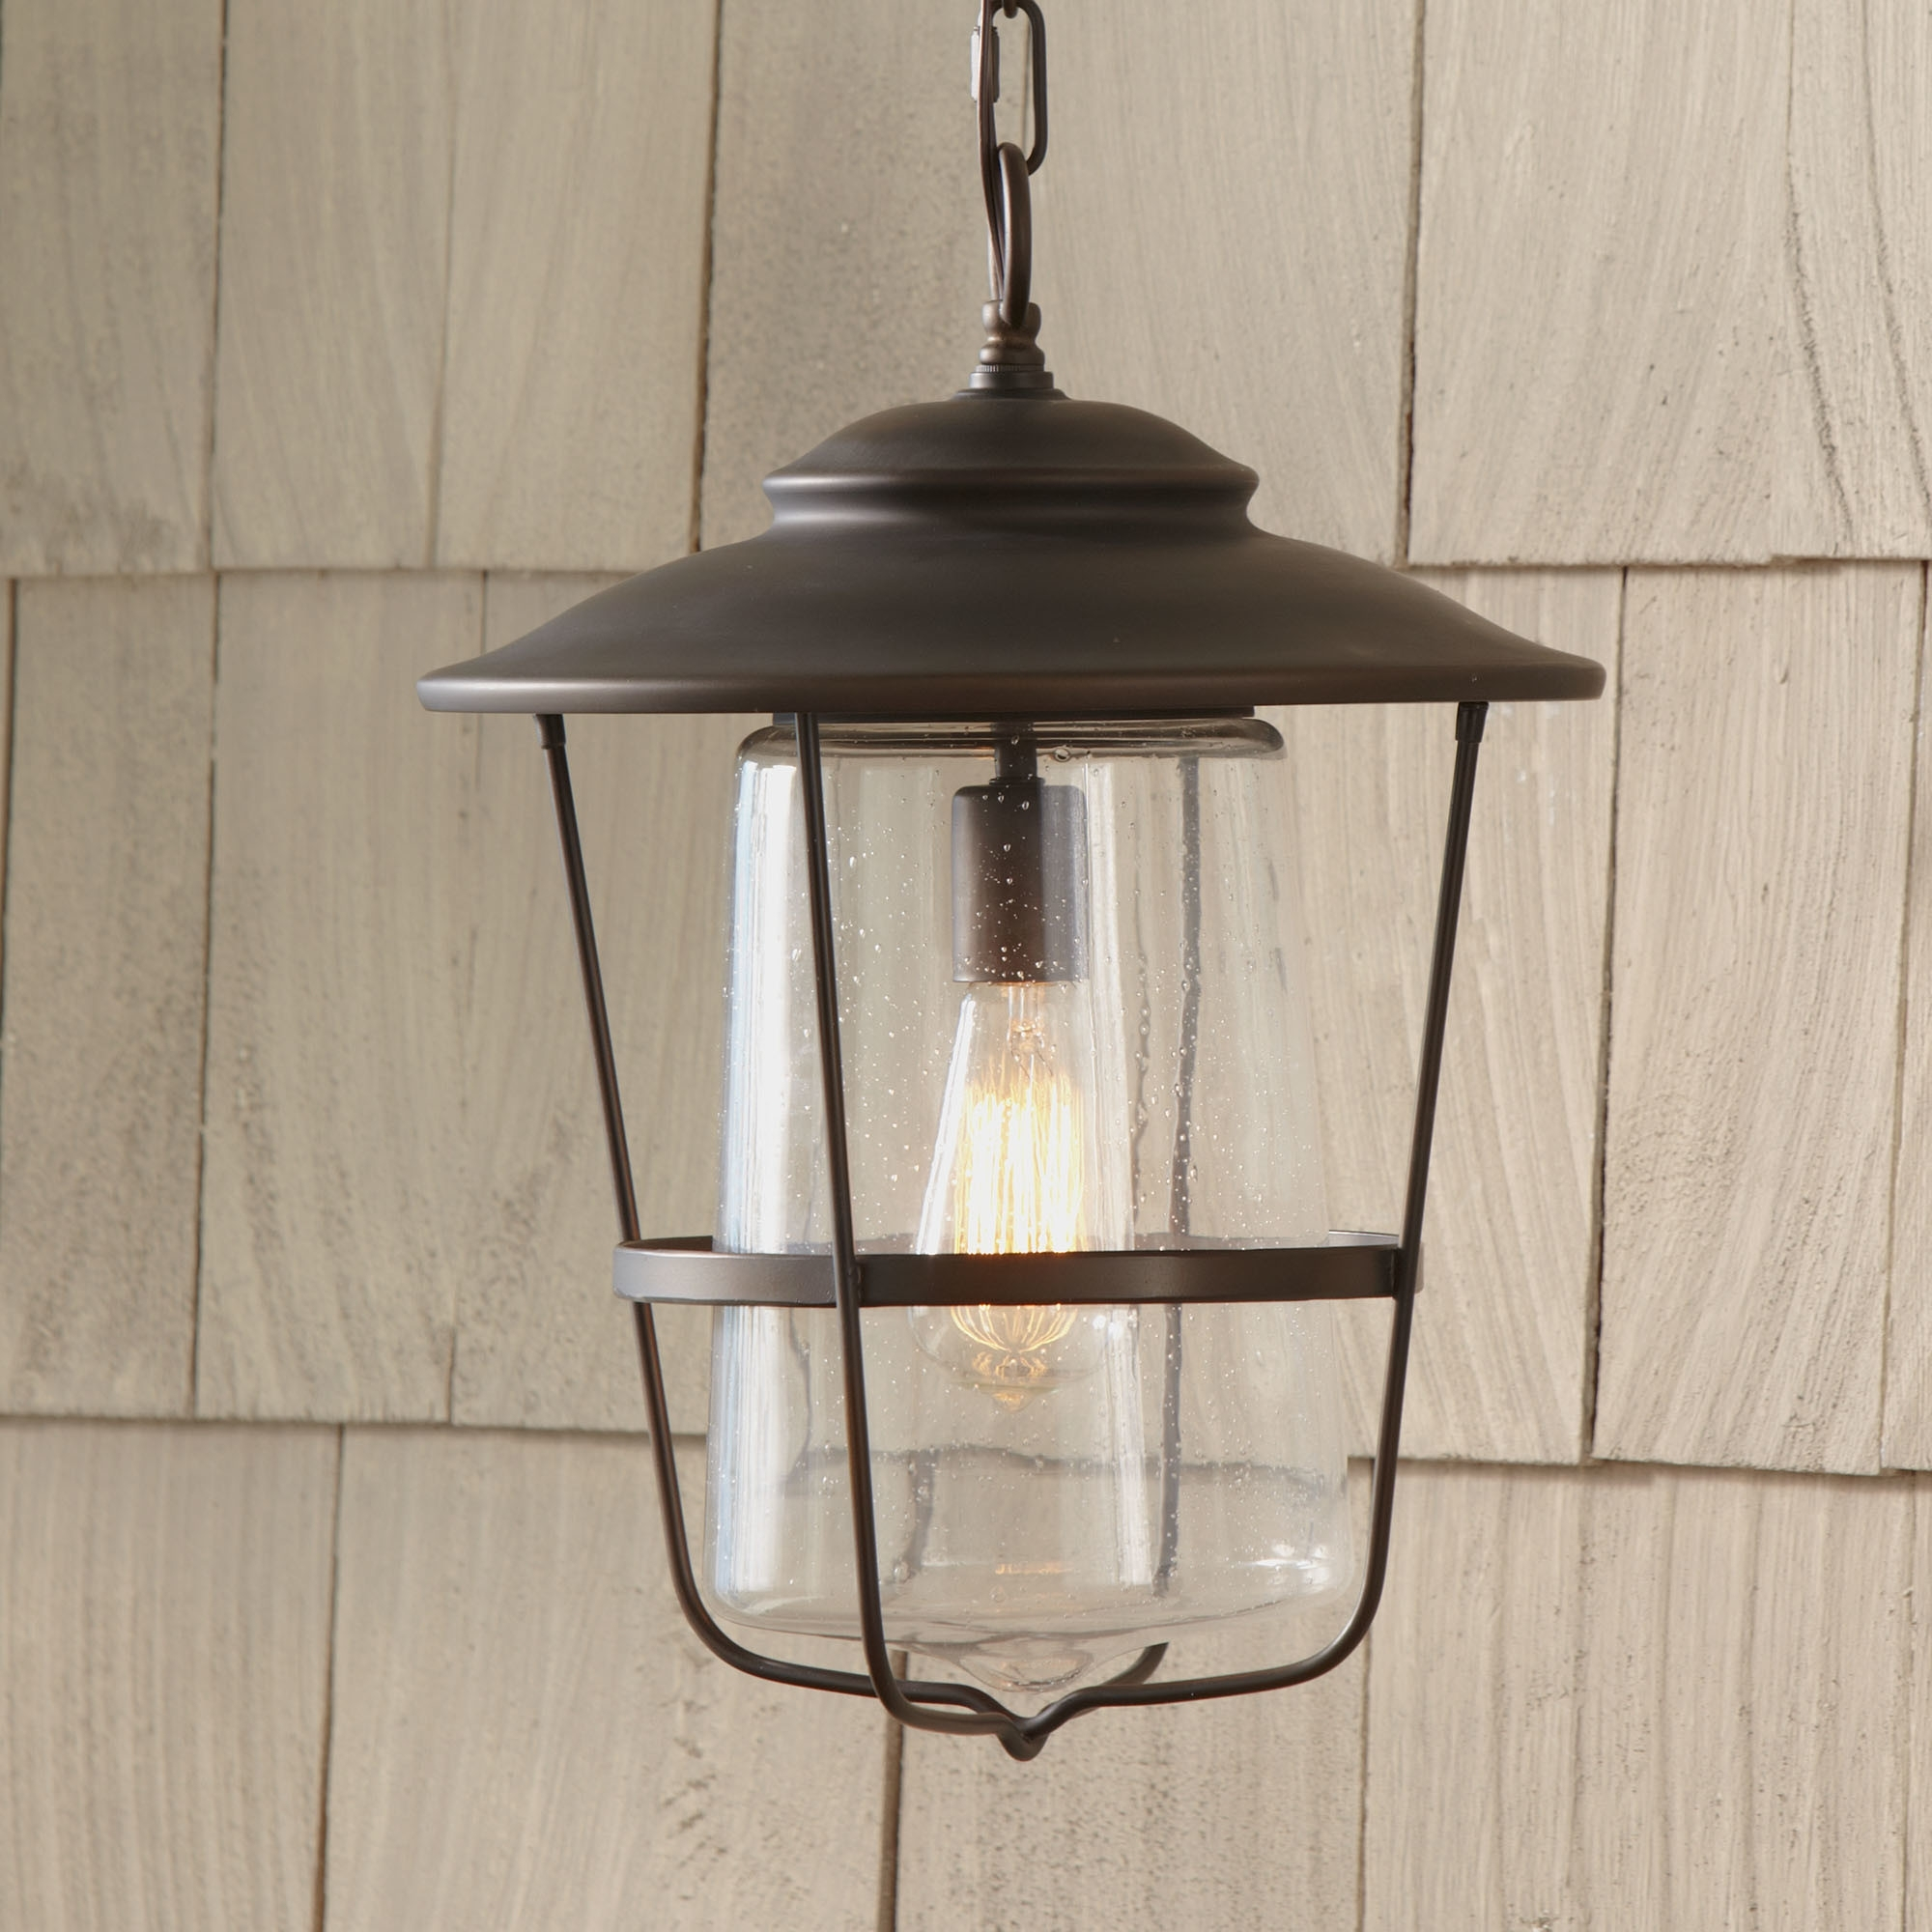 Modern Rustic Outdoor Lighting Att Wayfair For Current Outdoor Hanging Lights Wayfair Remington Lantern ~ Loversiq (View 2 of 20)